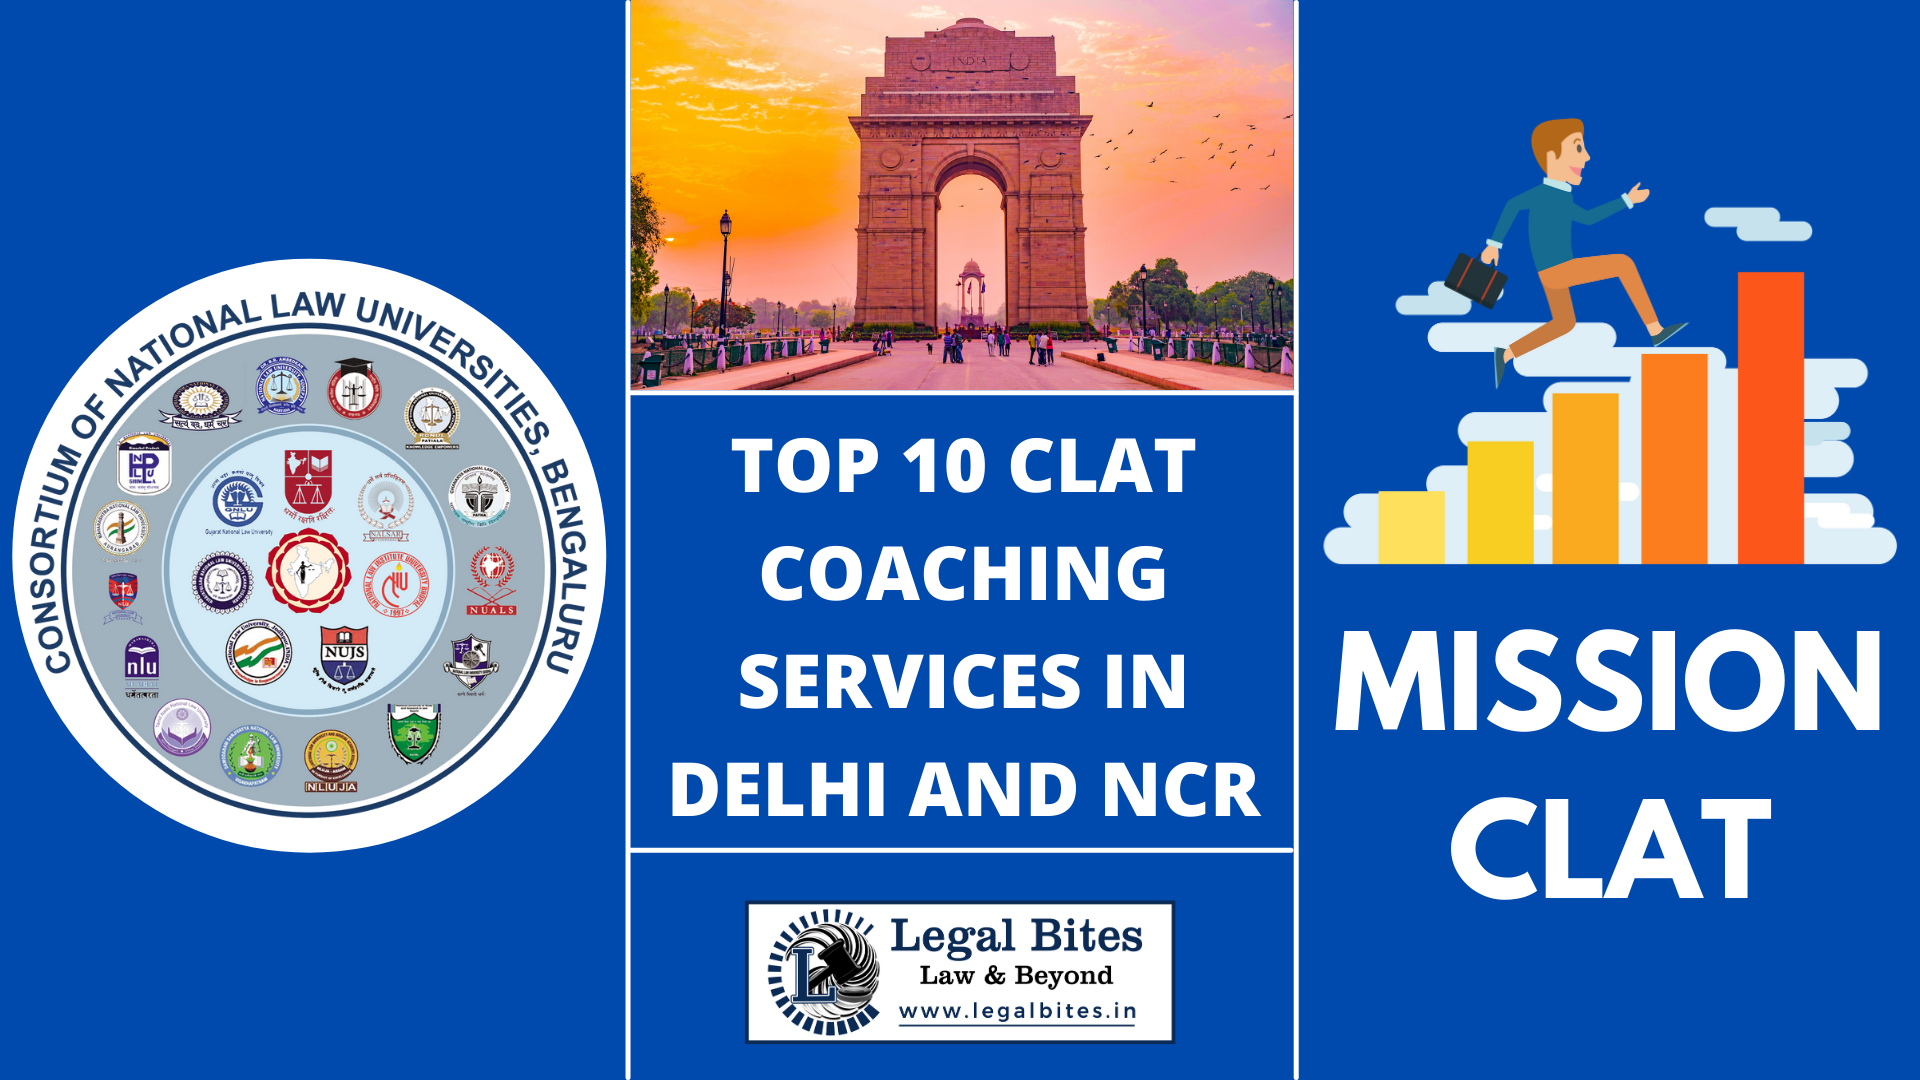 Top 10 CLAT Coaching Services in Delhi and NCR